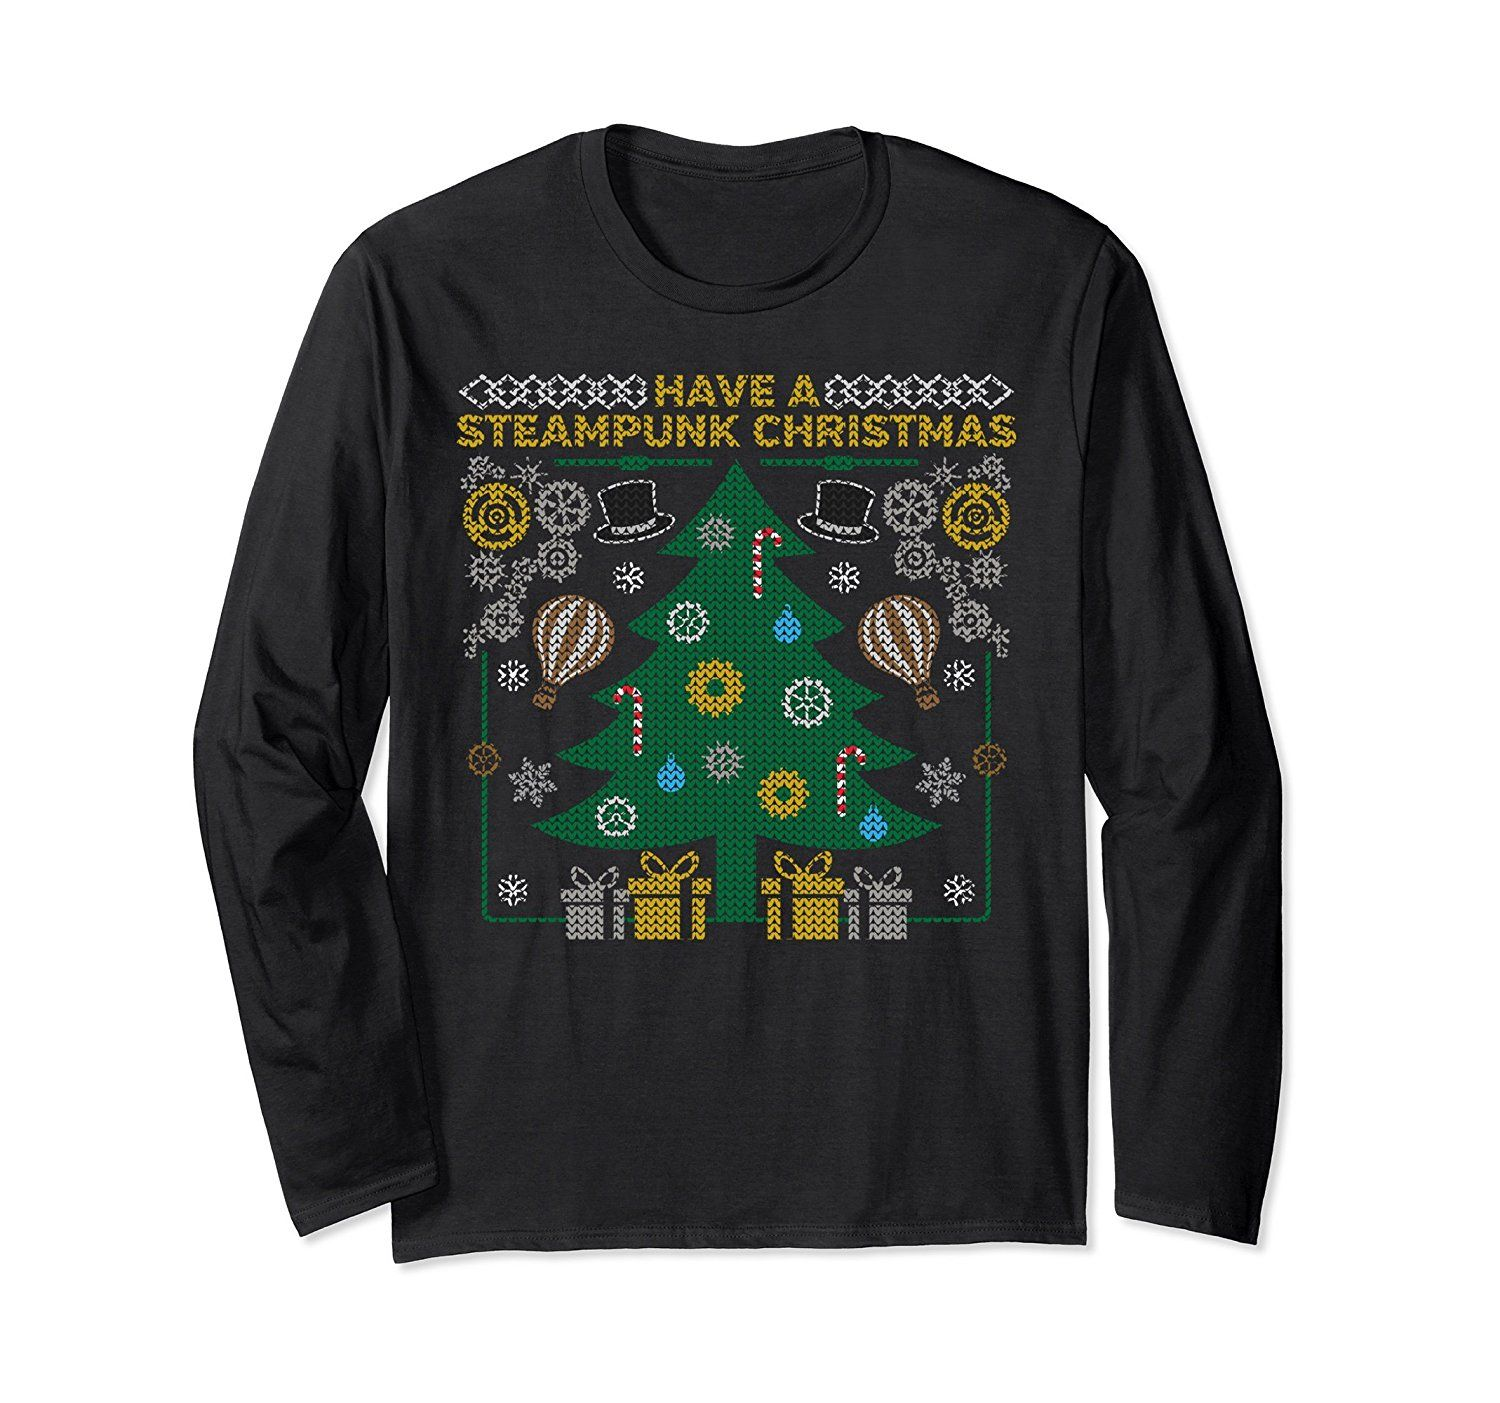 Steampunk Ugly Christmas Sweaters and T-Shirts for Men, Women & Kids ...